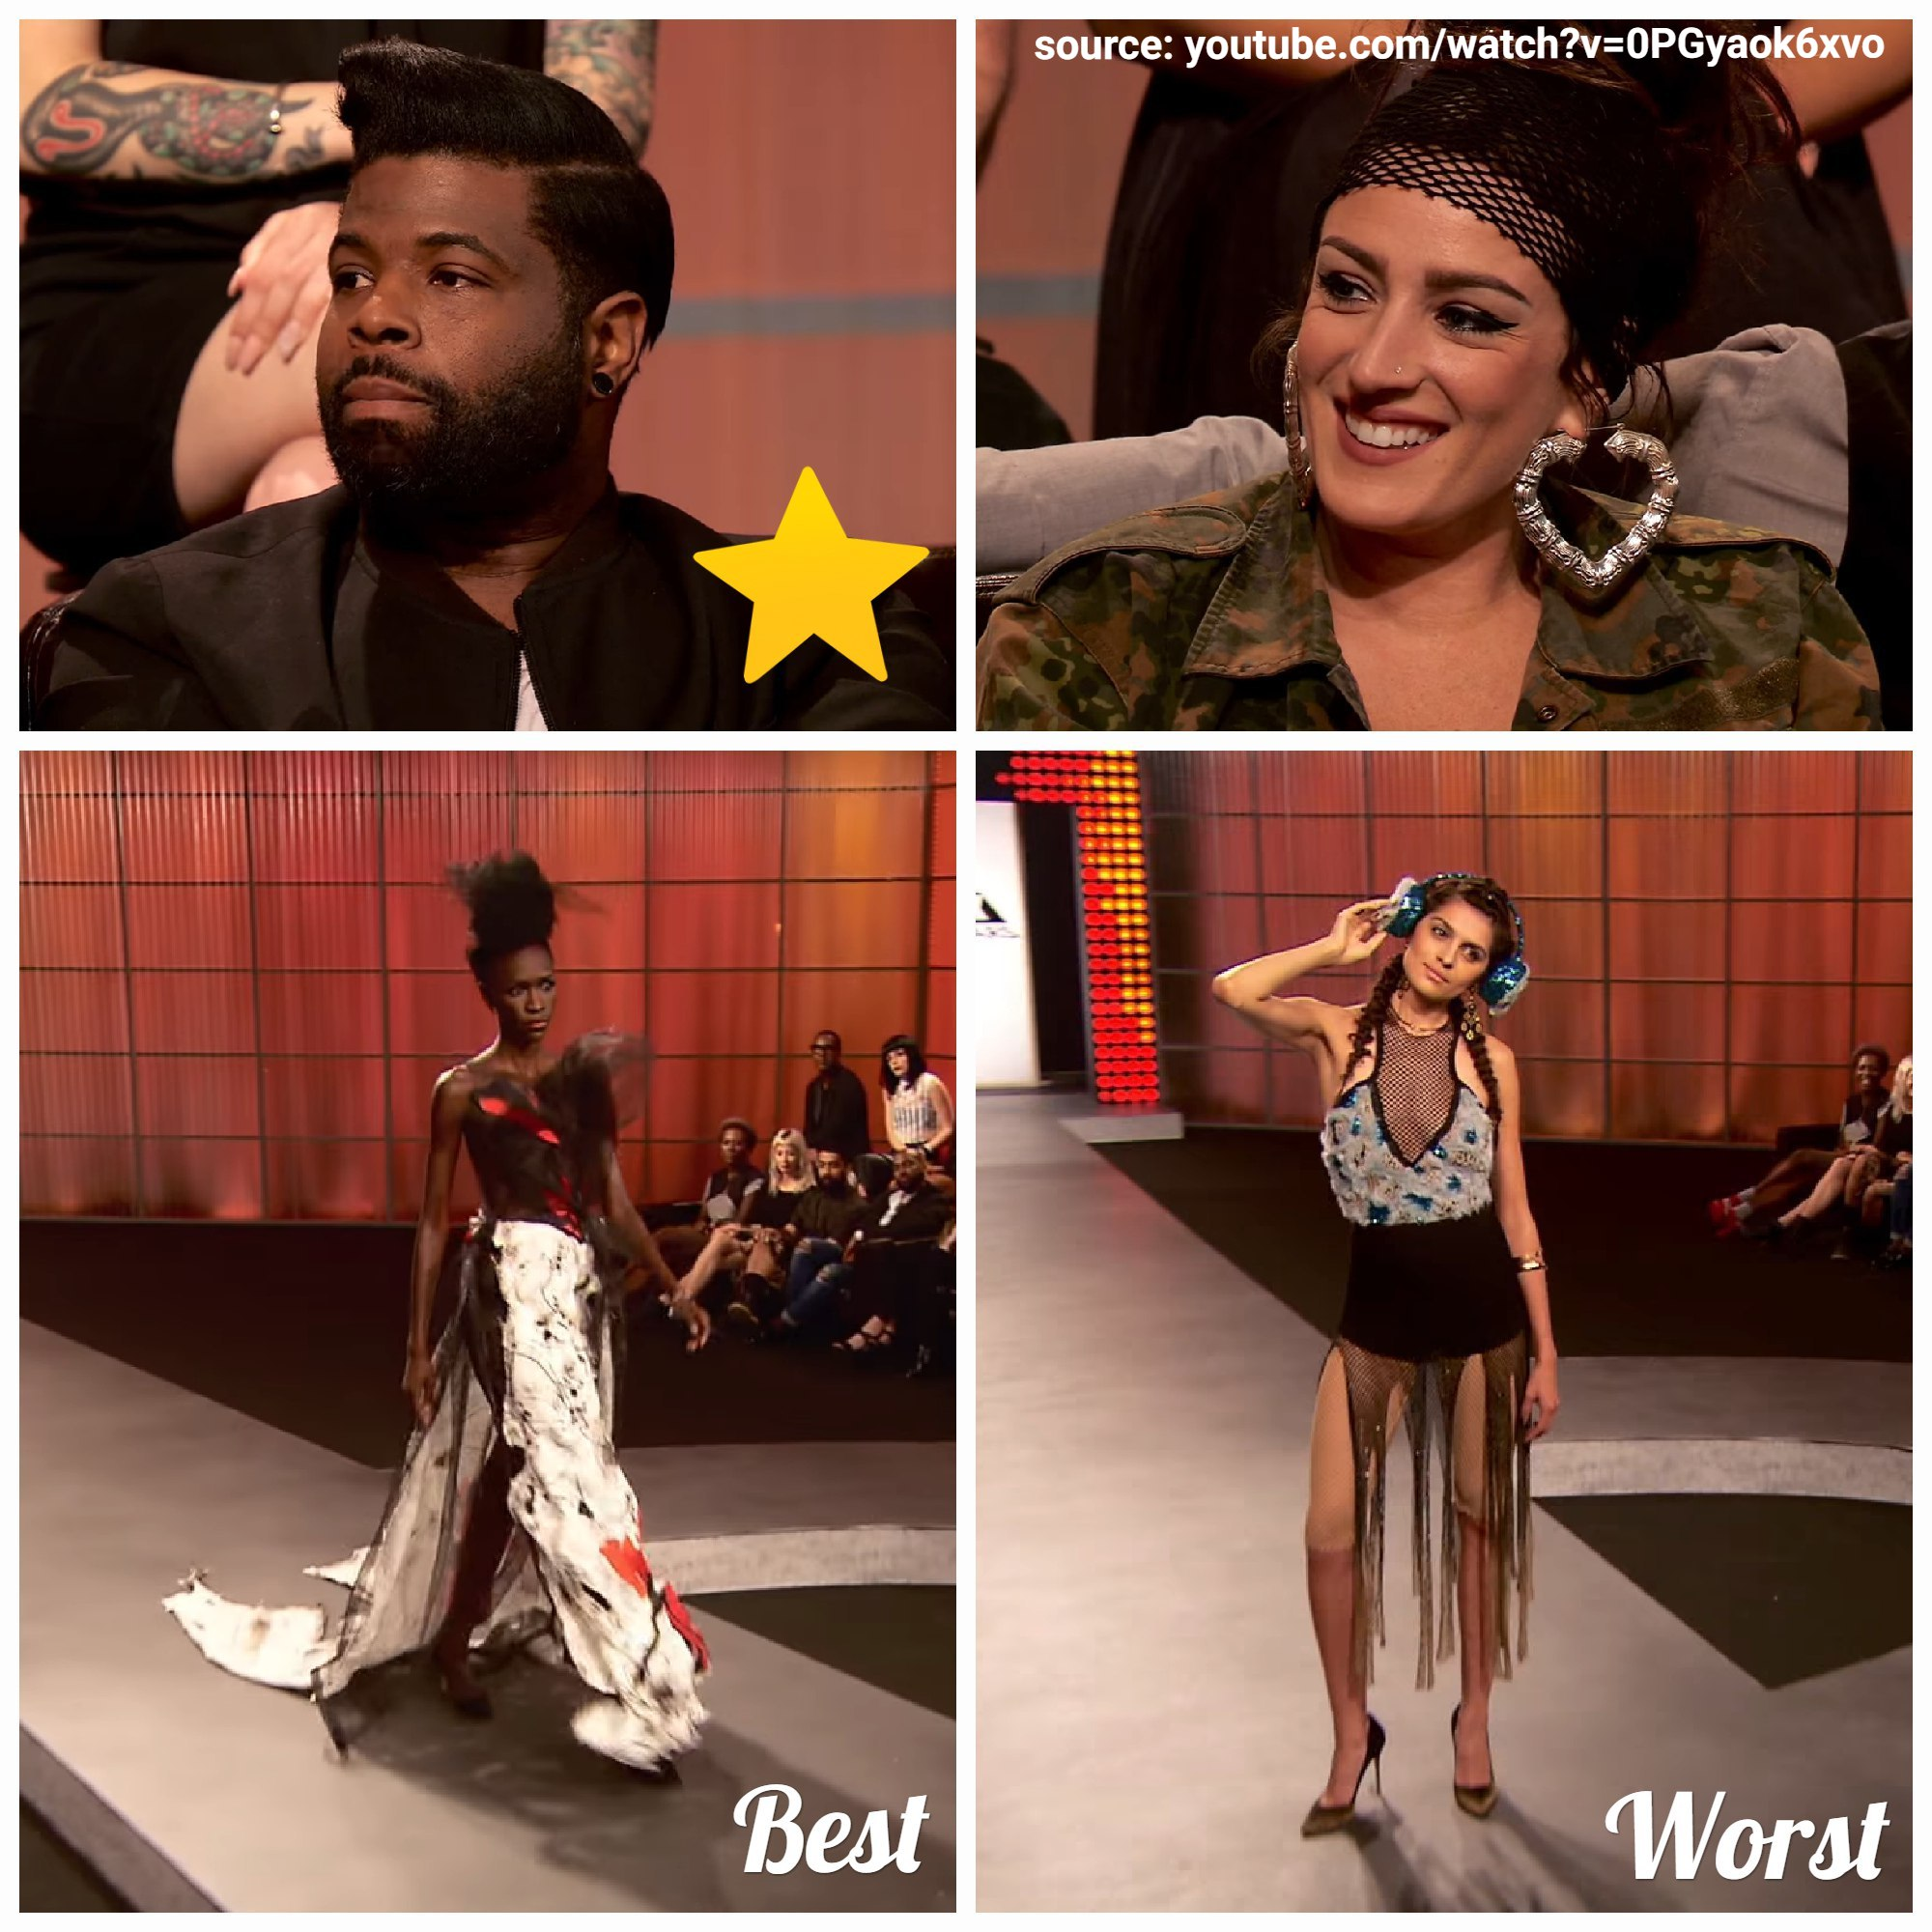 Project Runway All Stars season 6 episode 2 winner, best and worst design, who got eliminated